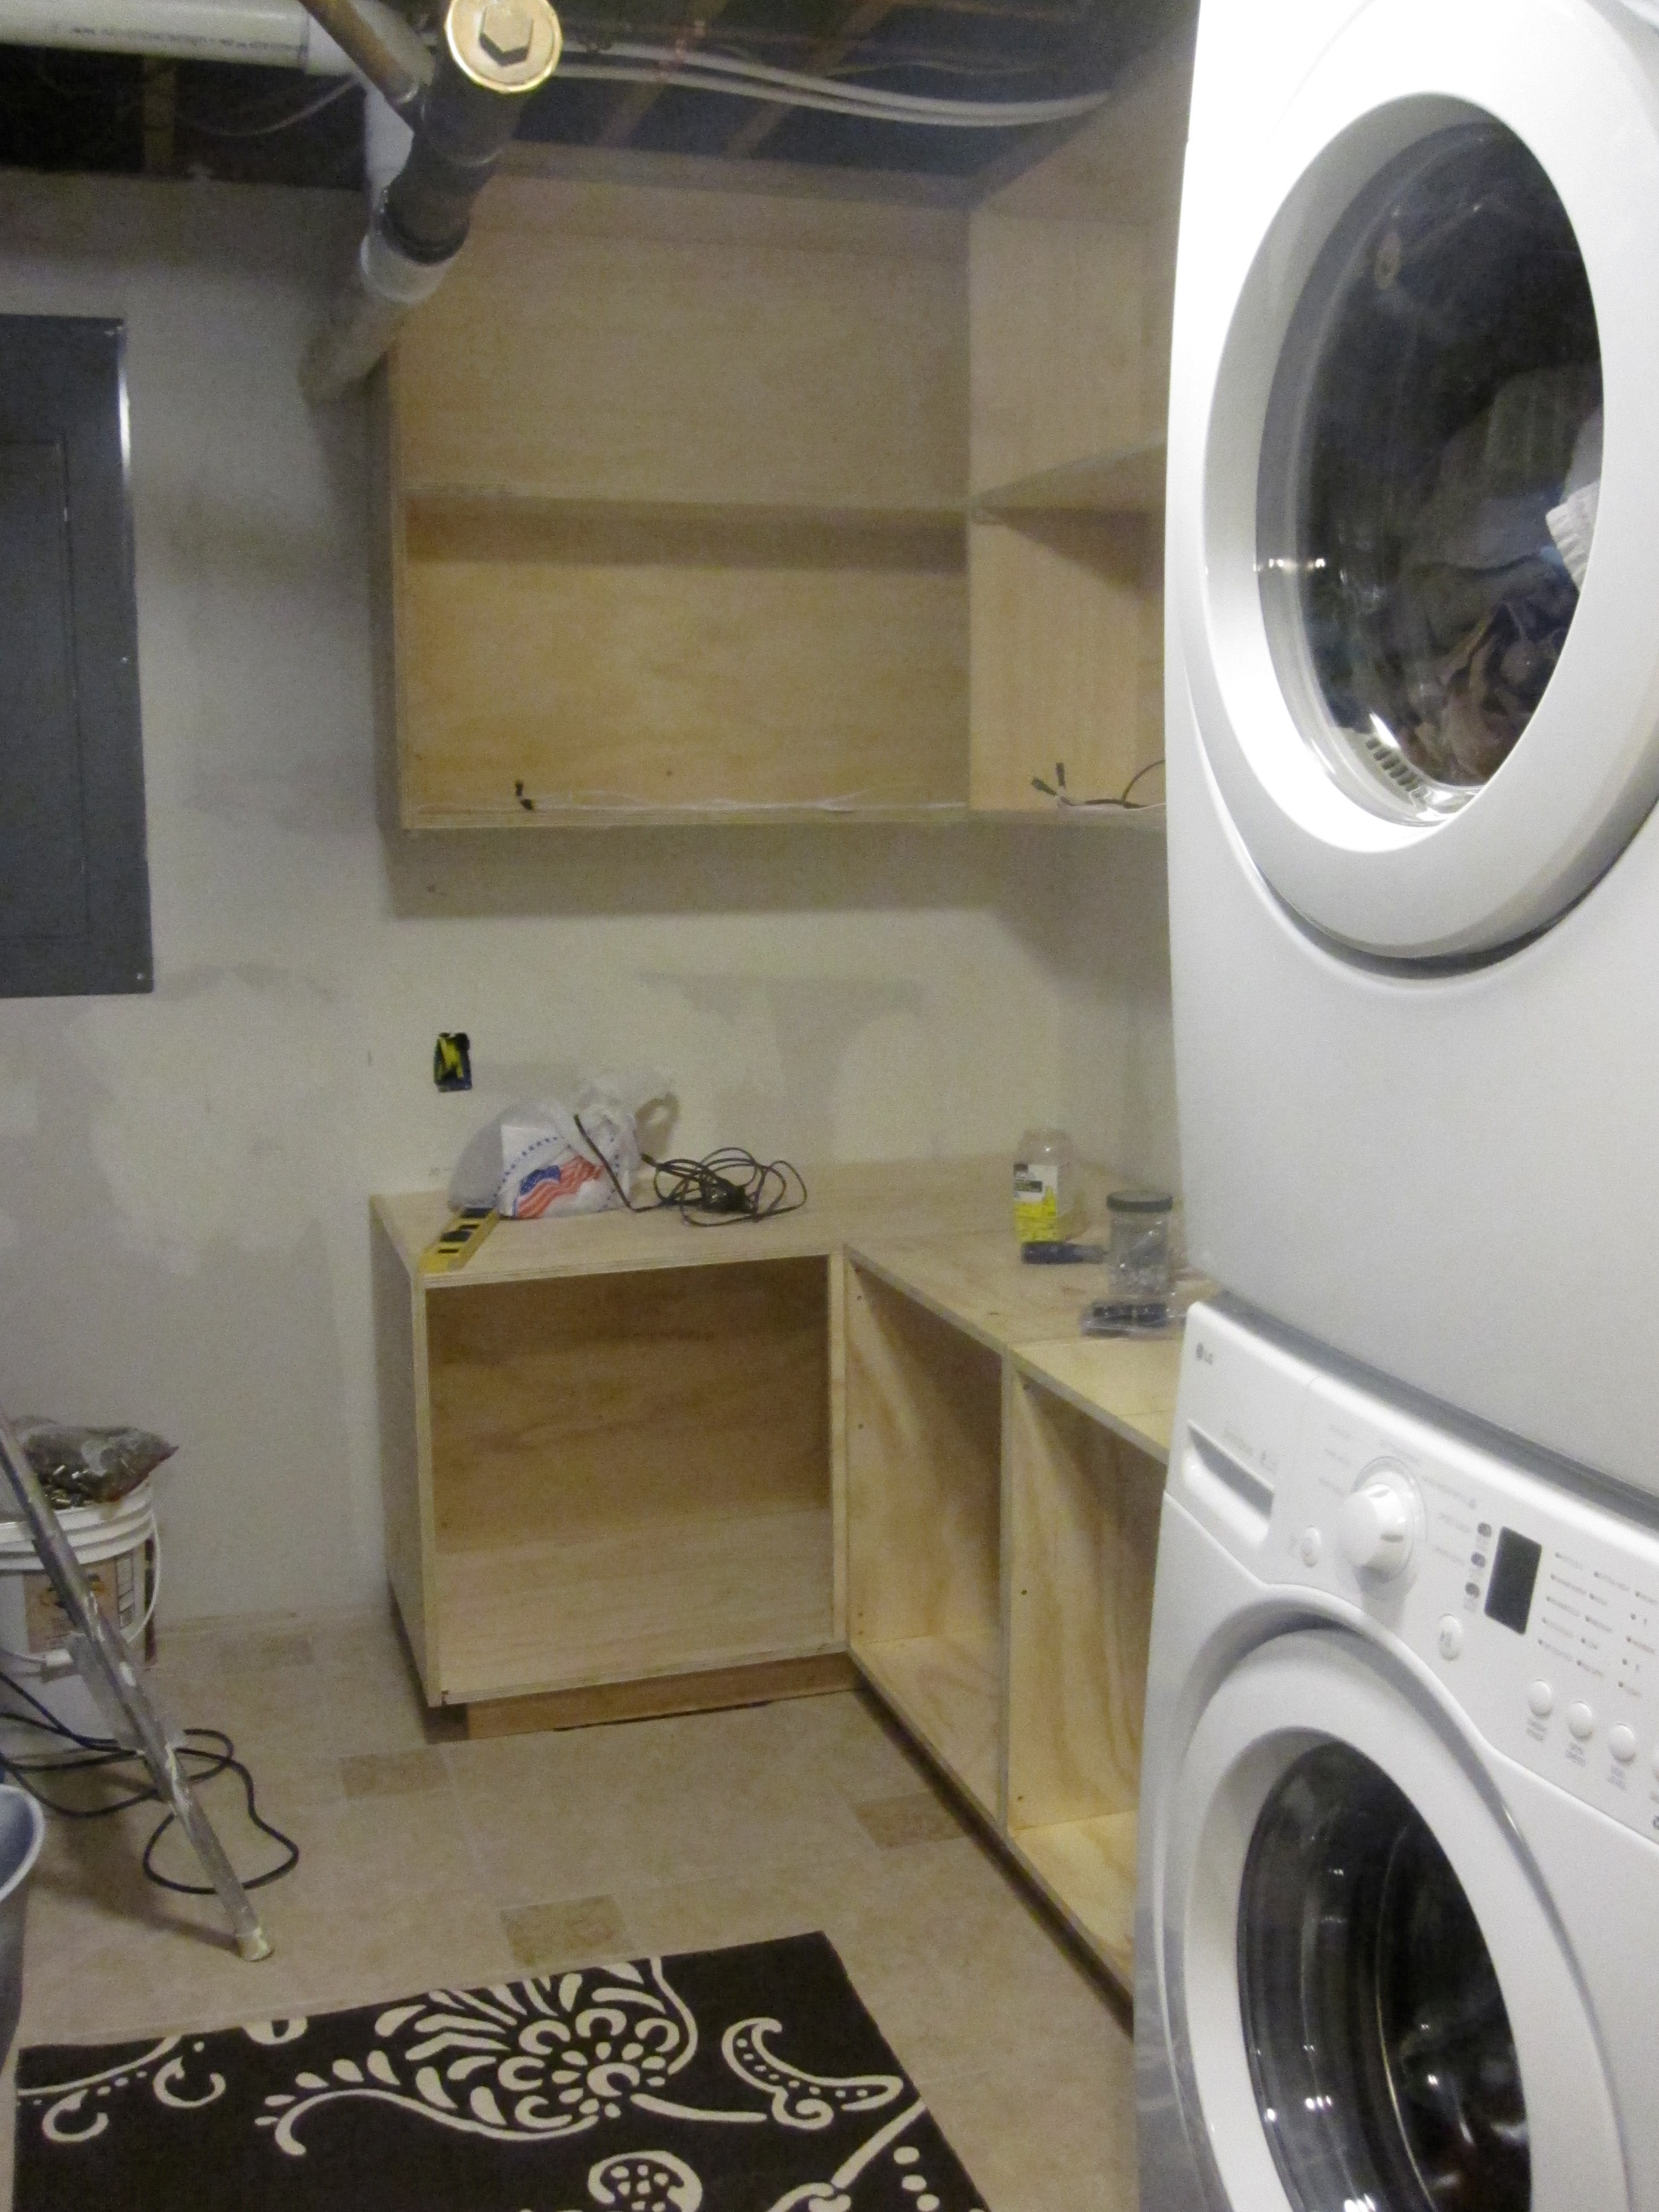 Laundry room cabinets cabinetry   davotanko home interior